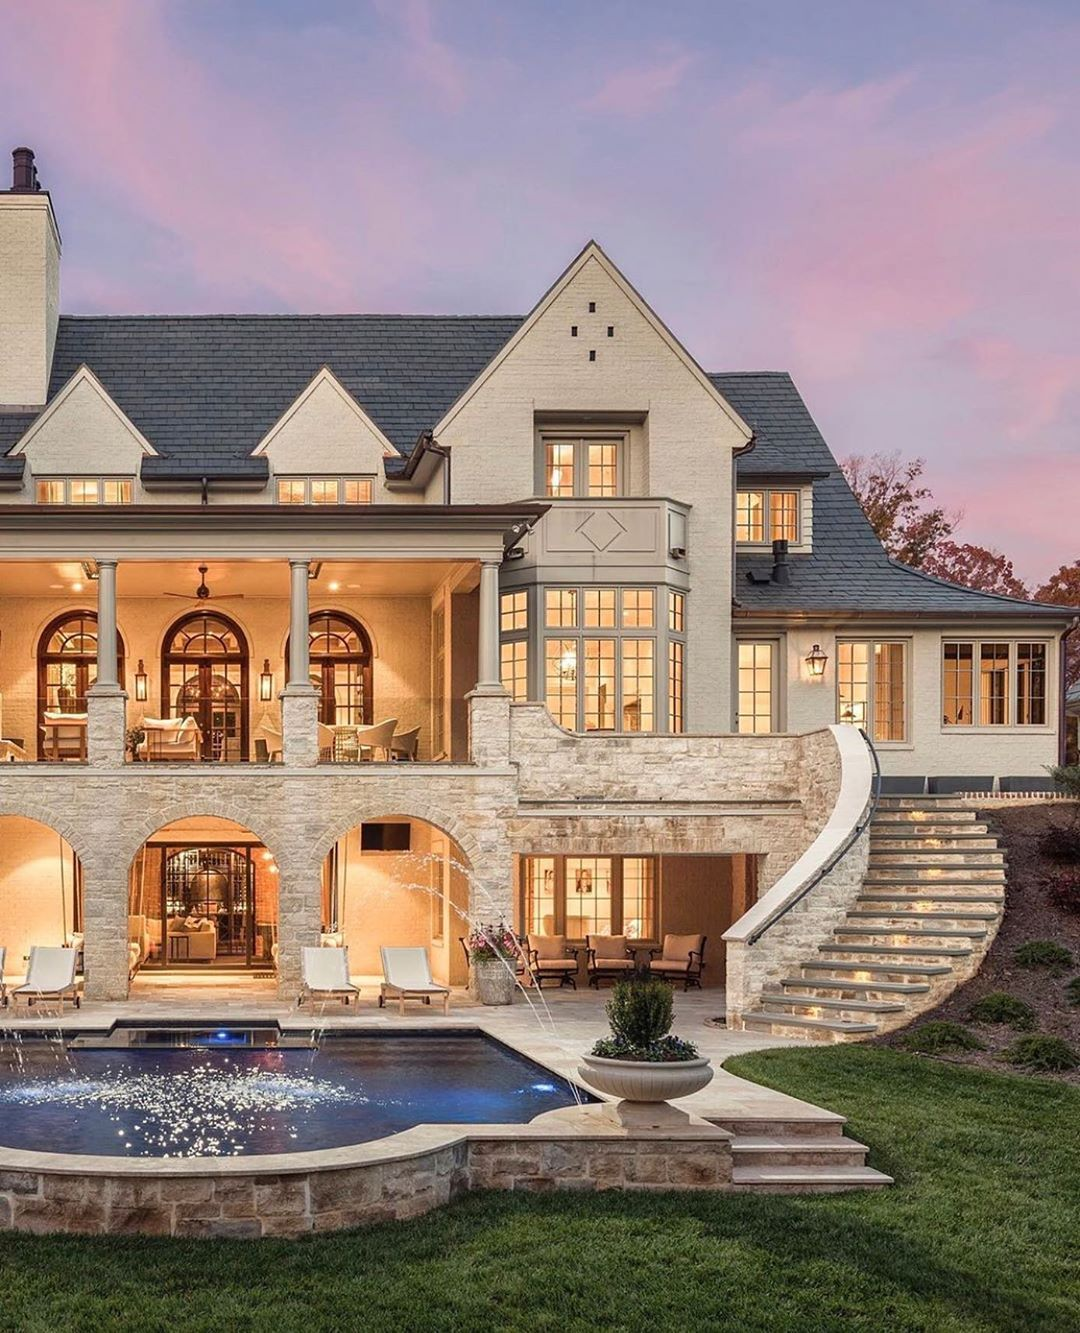 """Bevolo Gas & Electric Lights on Instagram: """"Isn't it grand 😍✨ spectacular property shared by @gerrardbuilders ✨ . . . #luxuryrealestate #dreamhouse #housegoals #charlottehomes…"""""""